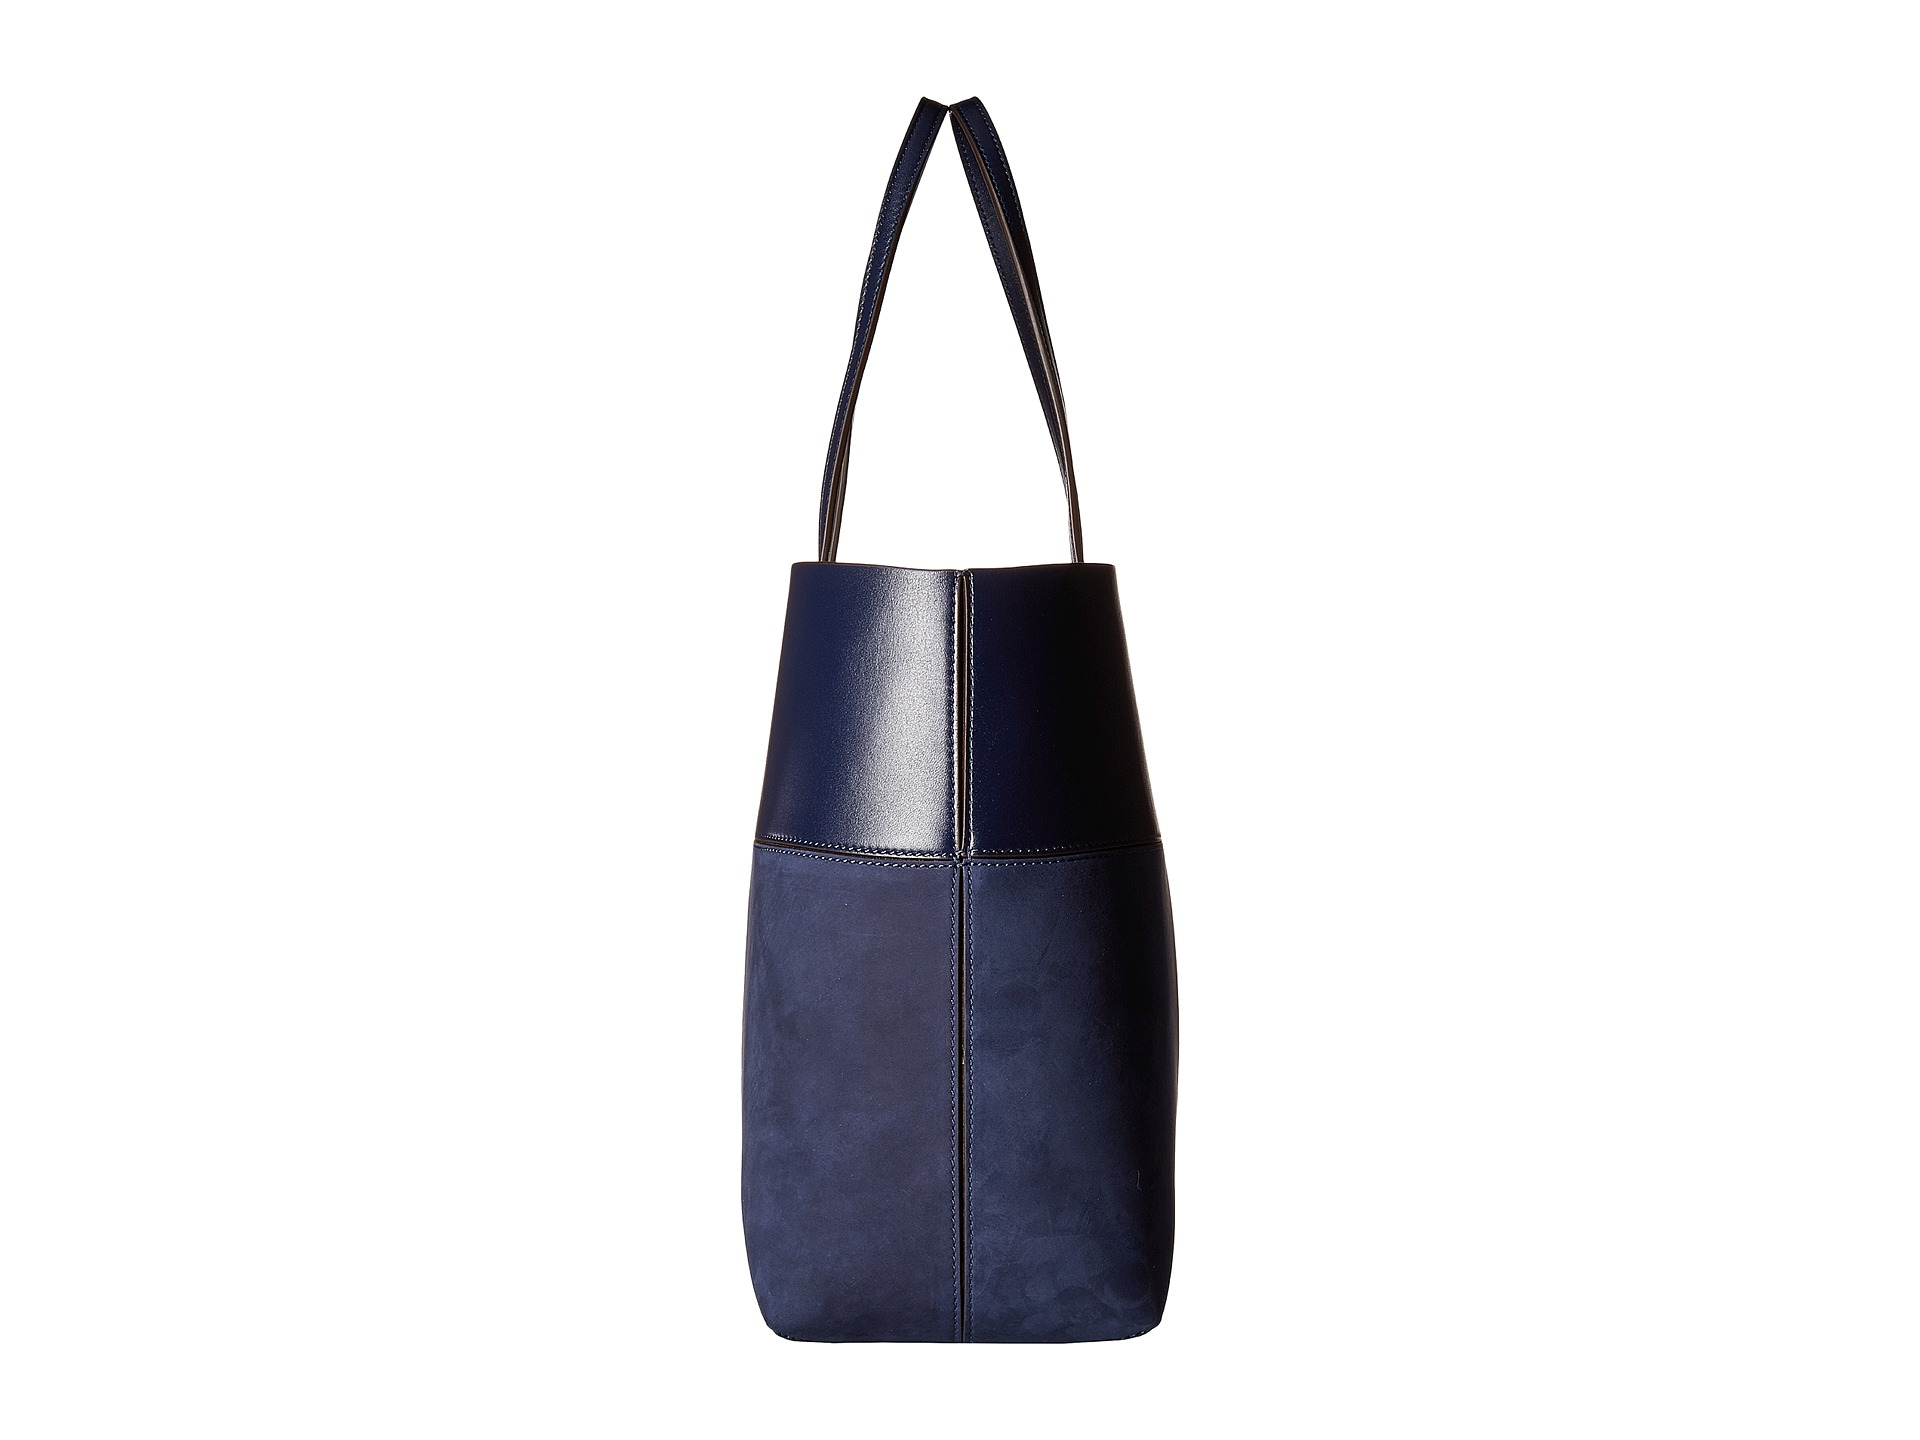 Tory Burch Block T Tote At Zappos Com